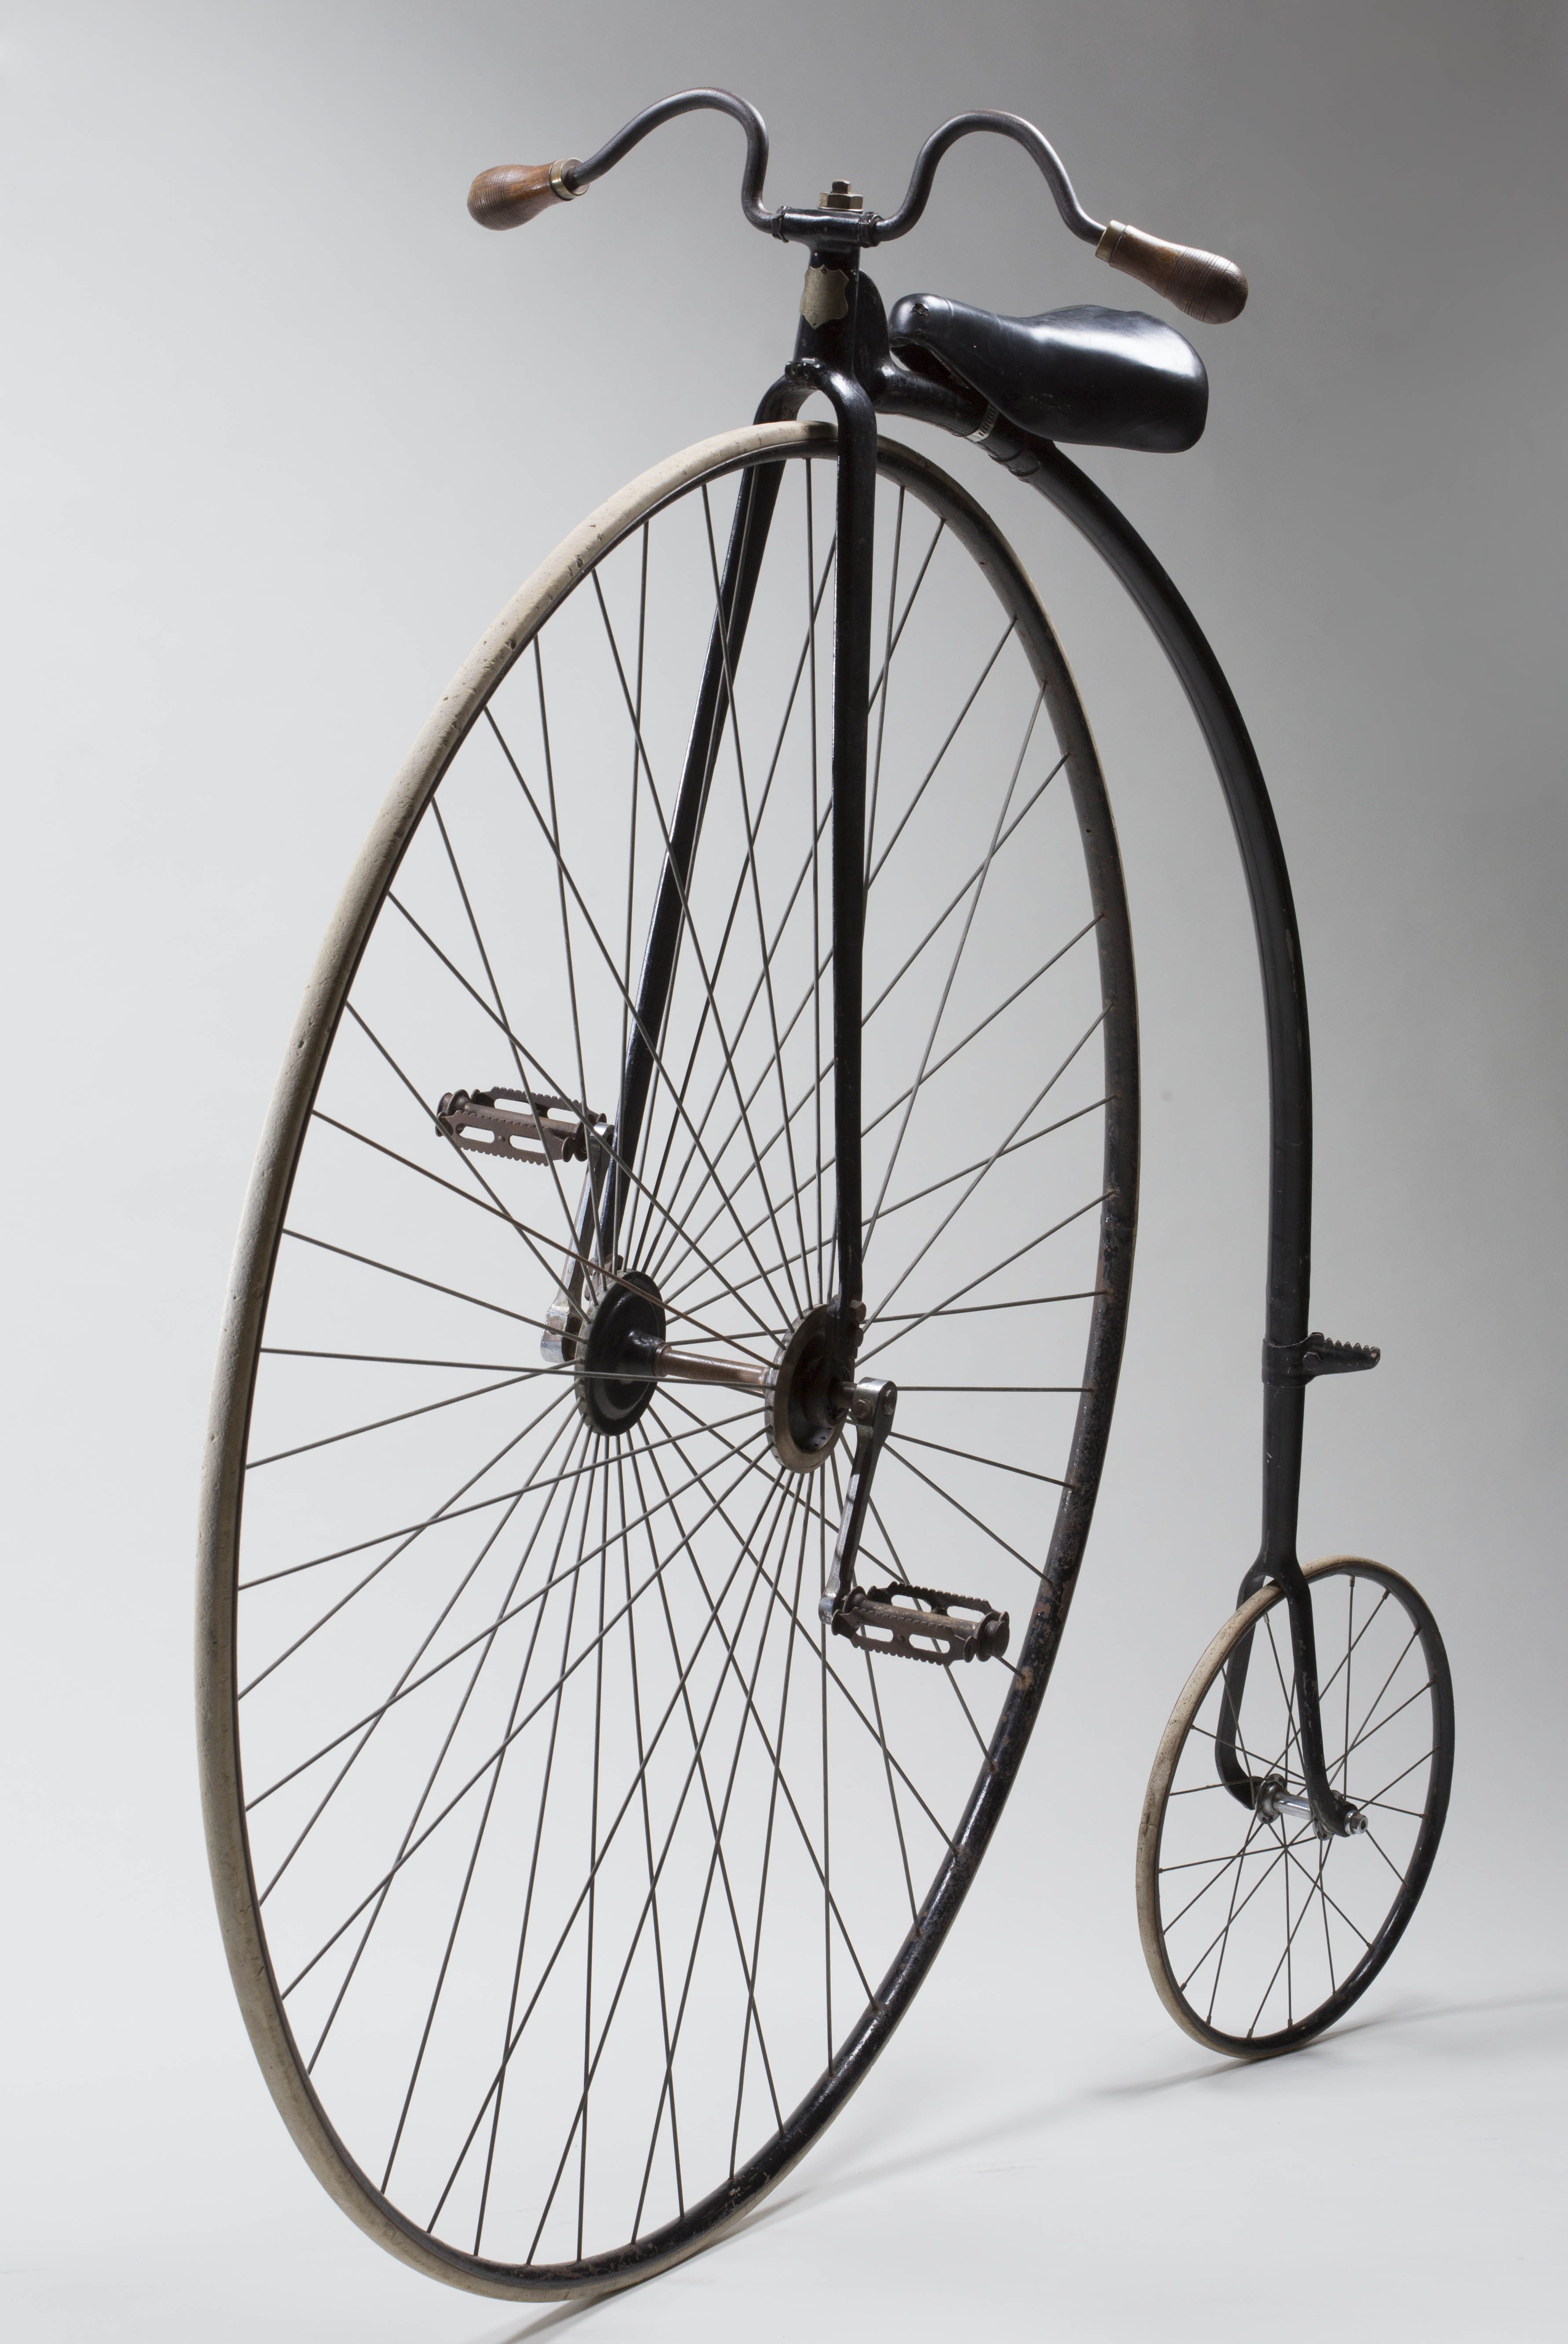 English Made Cogent Penny Farthing Bicycle Belonging To Harry Clarke 1884 National Museum Of Australia Ma447446 Penny Farthing Bicycle Penny Farthing Bicycle